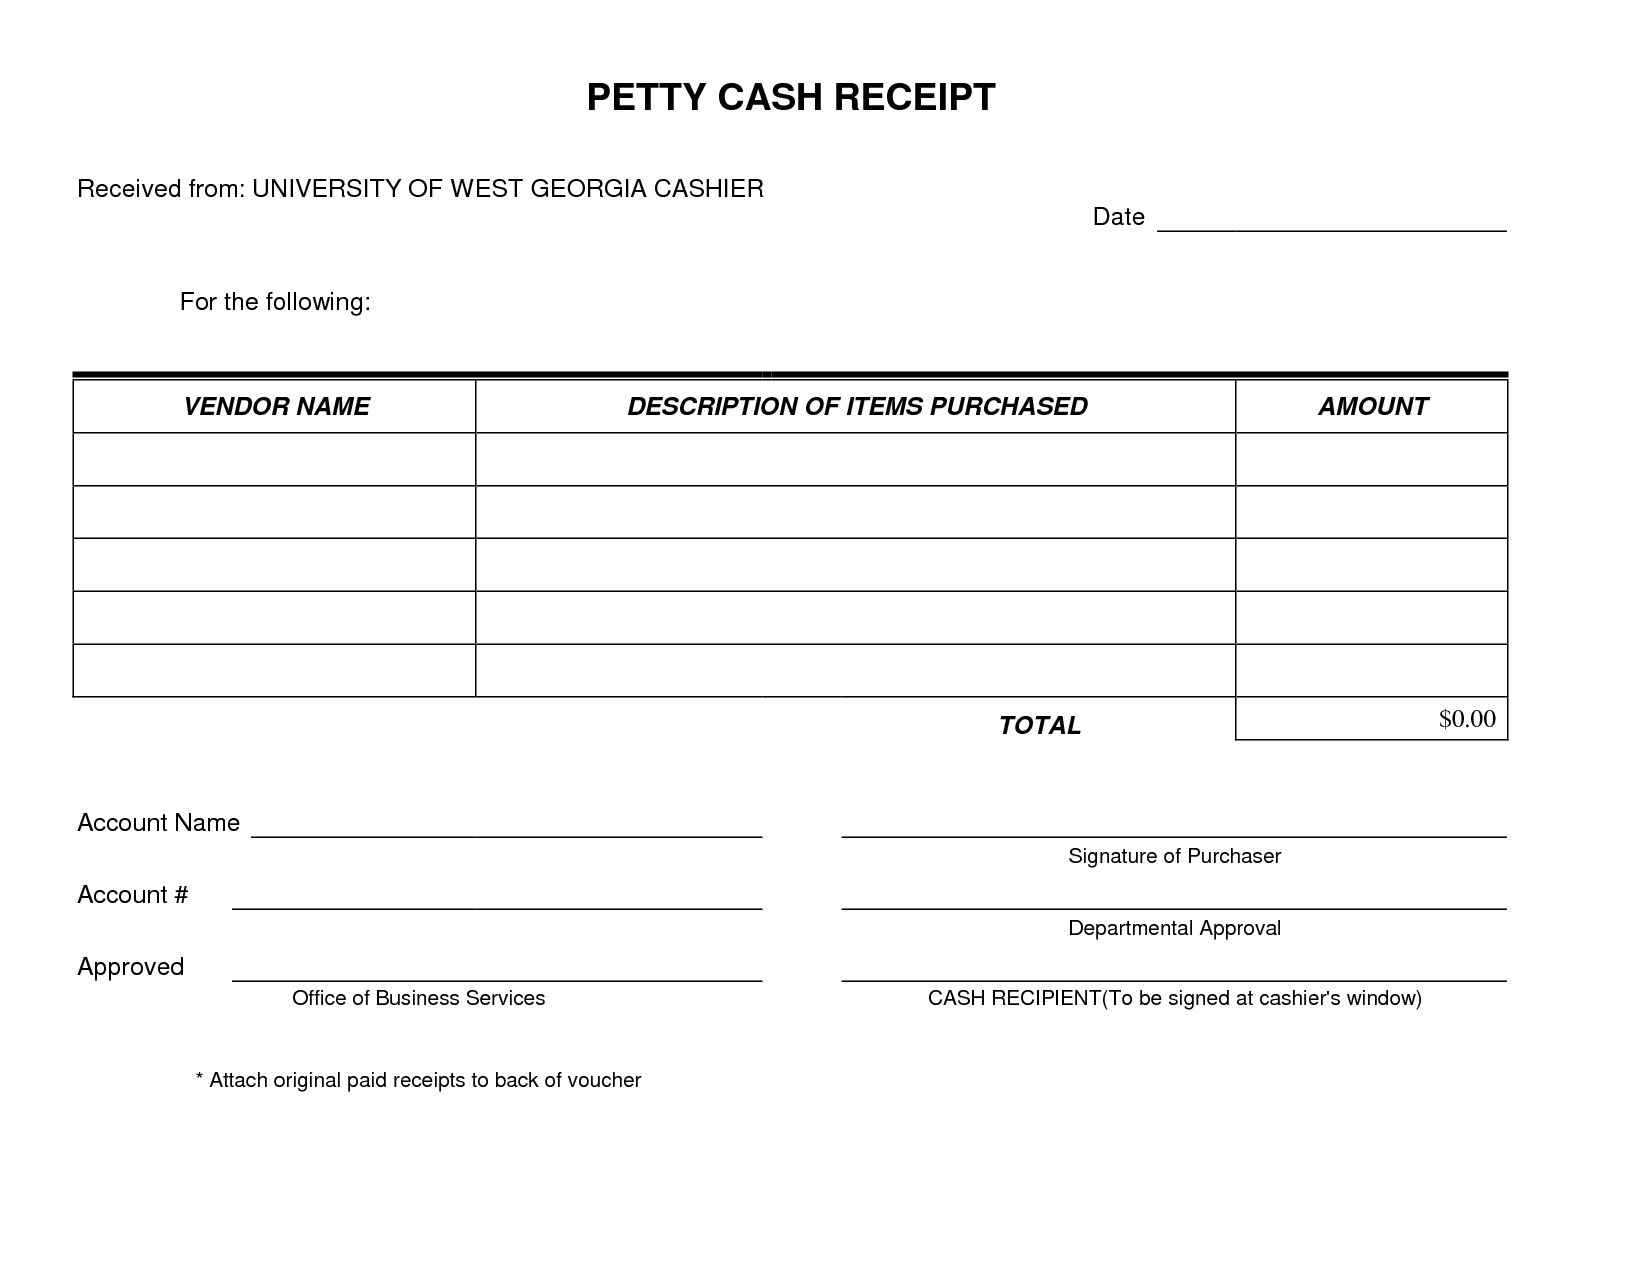 Petty Cash Receipt Form Template Very Simple And Easy To Print. I - Free Printable Petty Cash Voucher